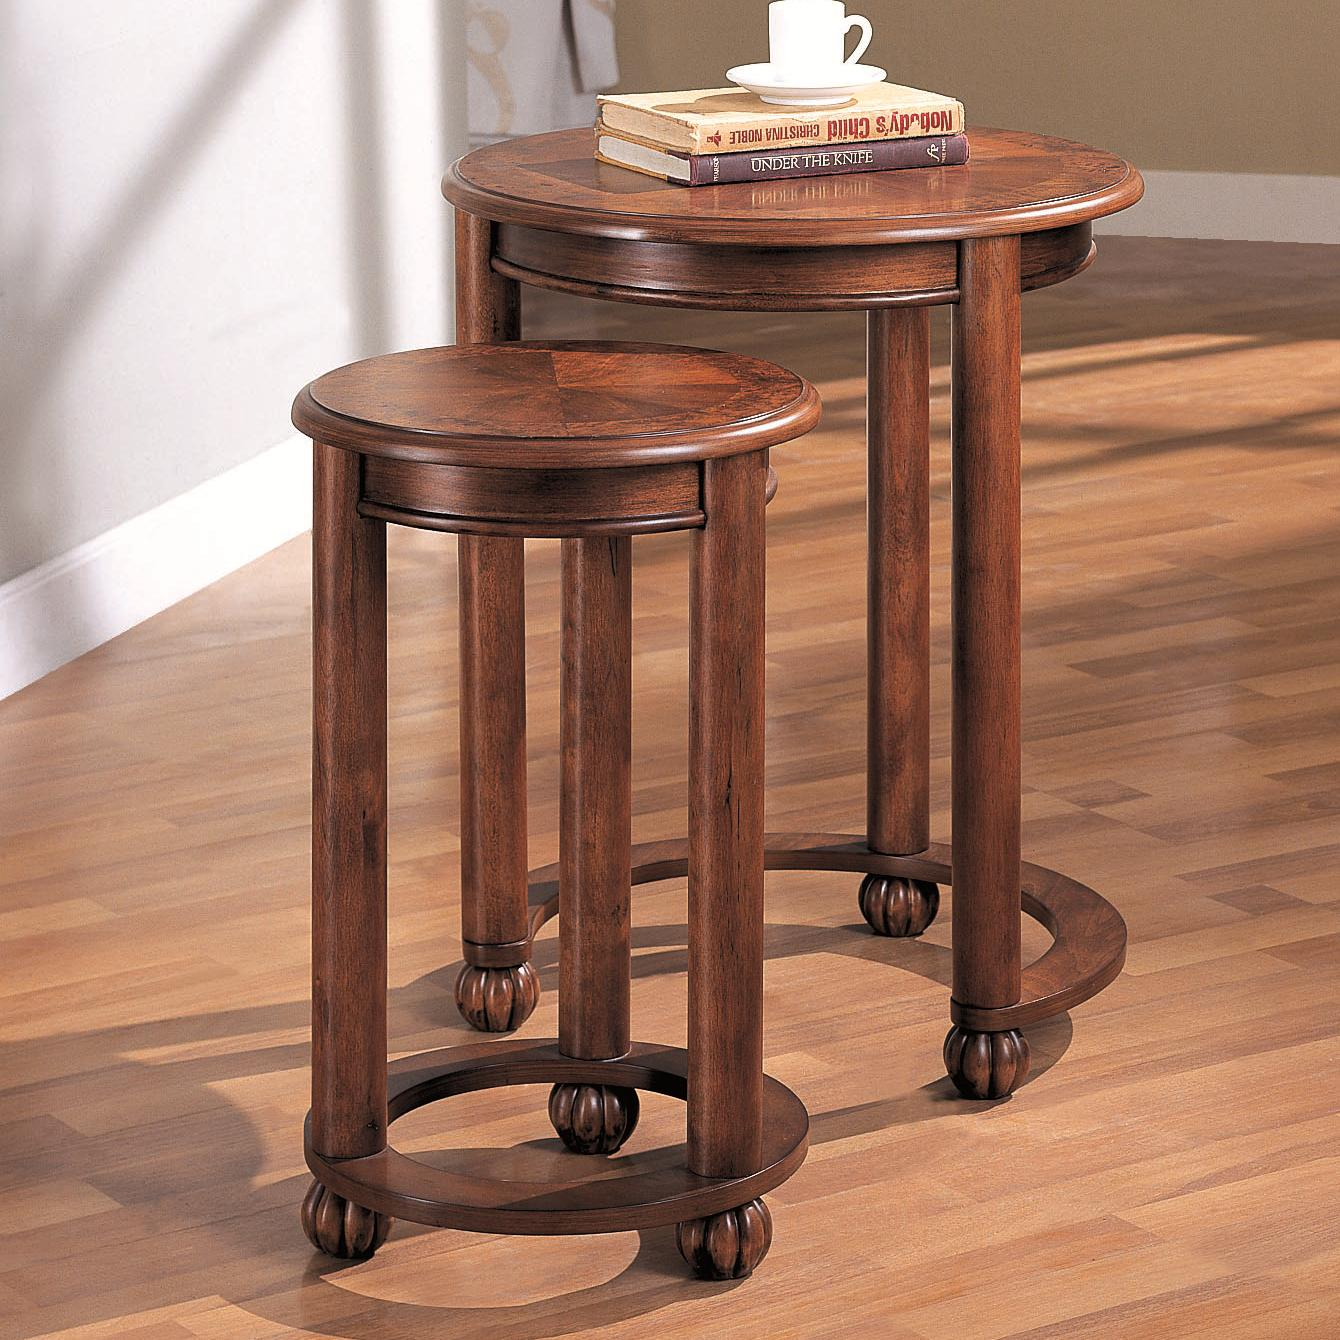 Coaster Nesting Tables Nesting Tables - Item Number: 901039